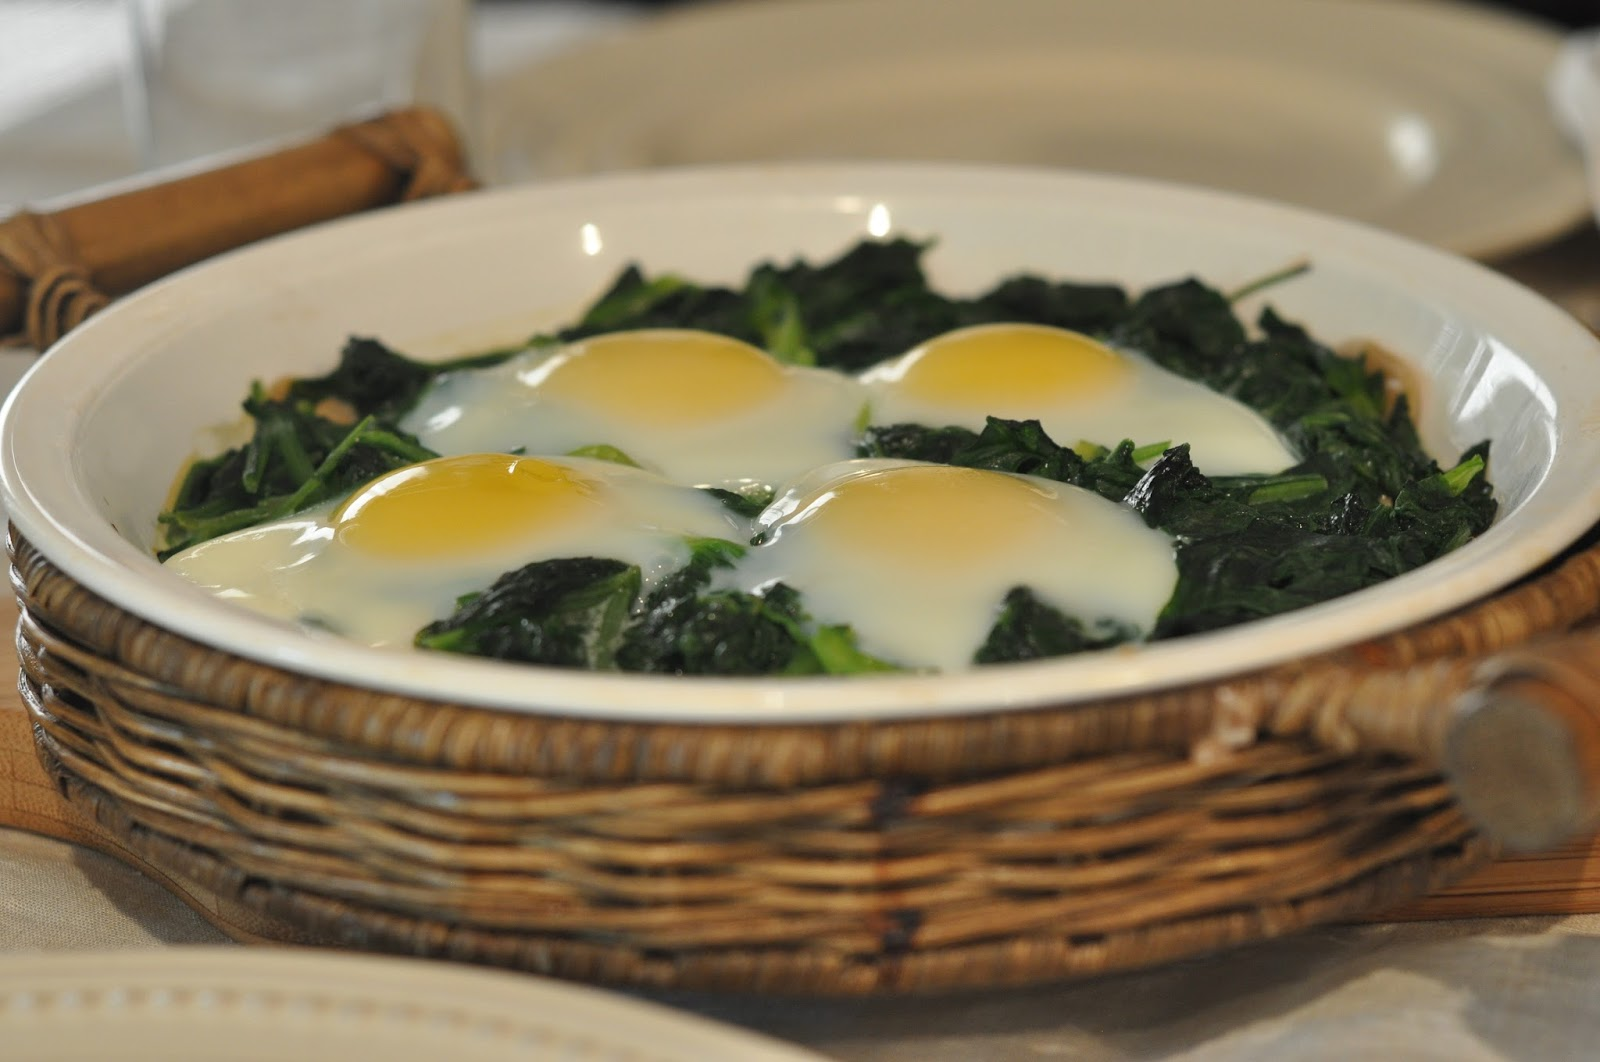 Mennonite Girls Can Cook: Spinach with Eggs